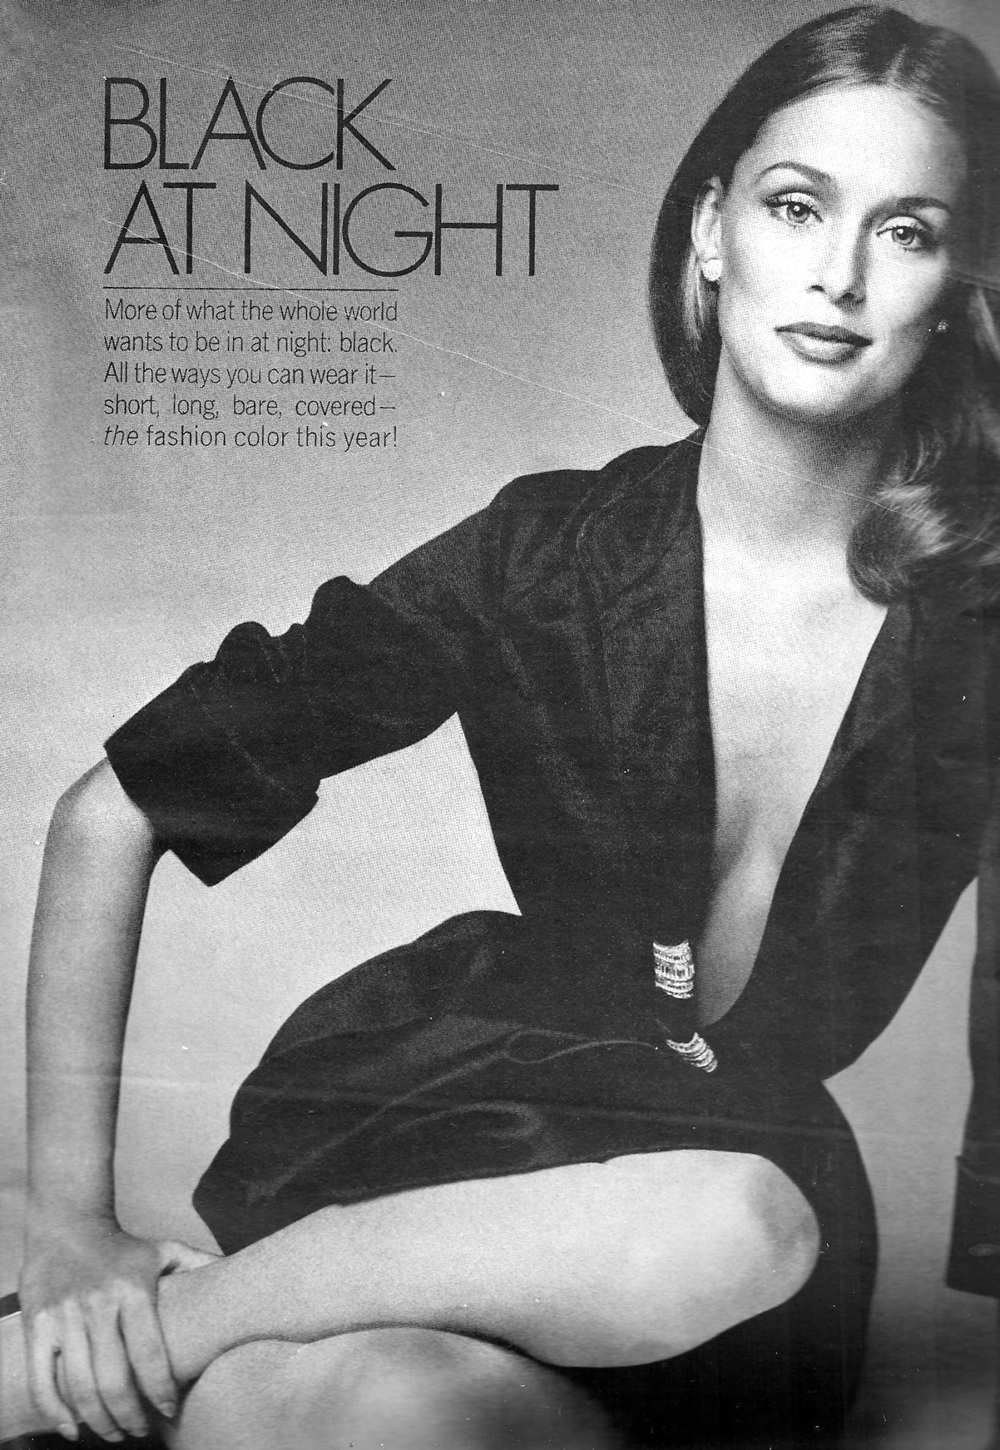 Turn your classic shirt dress into an evening LBD... a la Lauren Hutton in Vogue US October 1973 / via fashioned by love british fashion blog